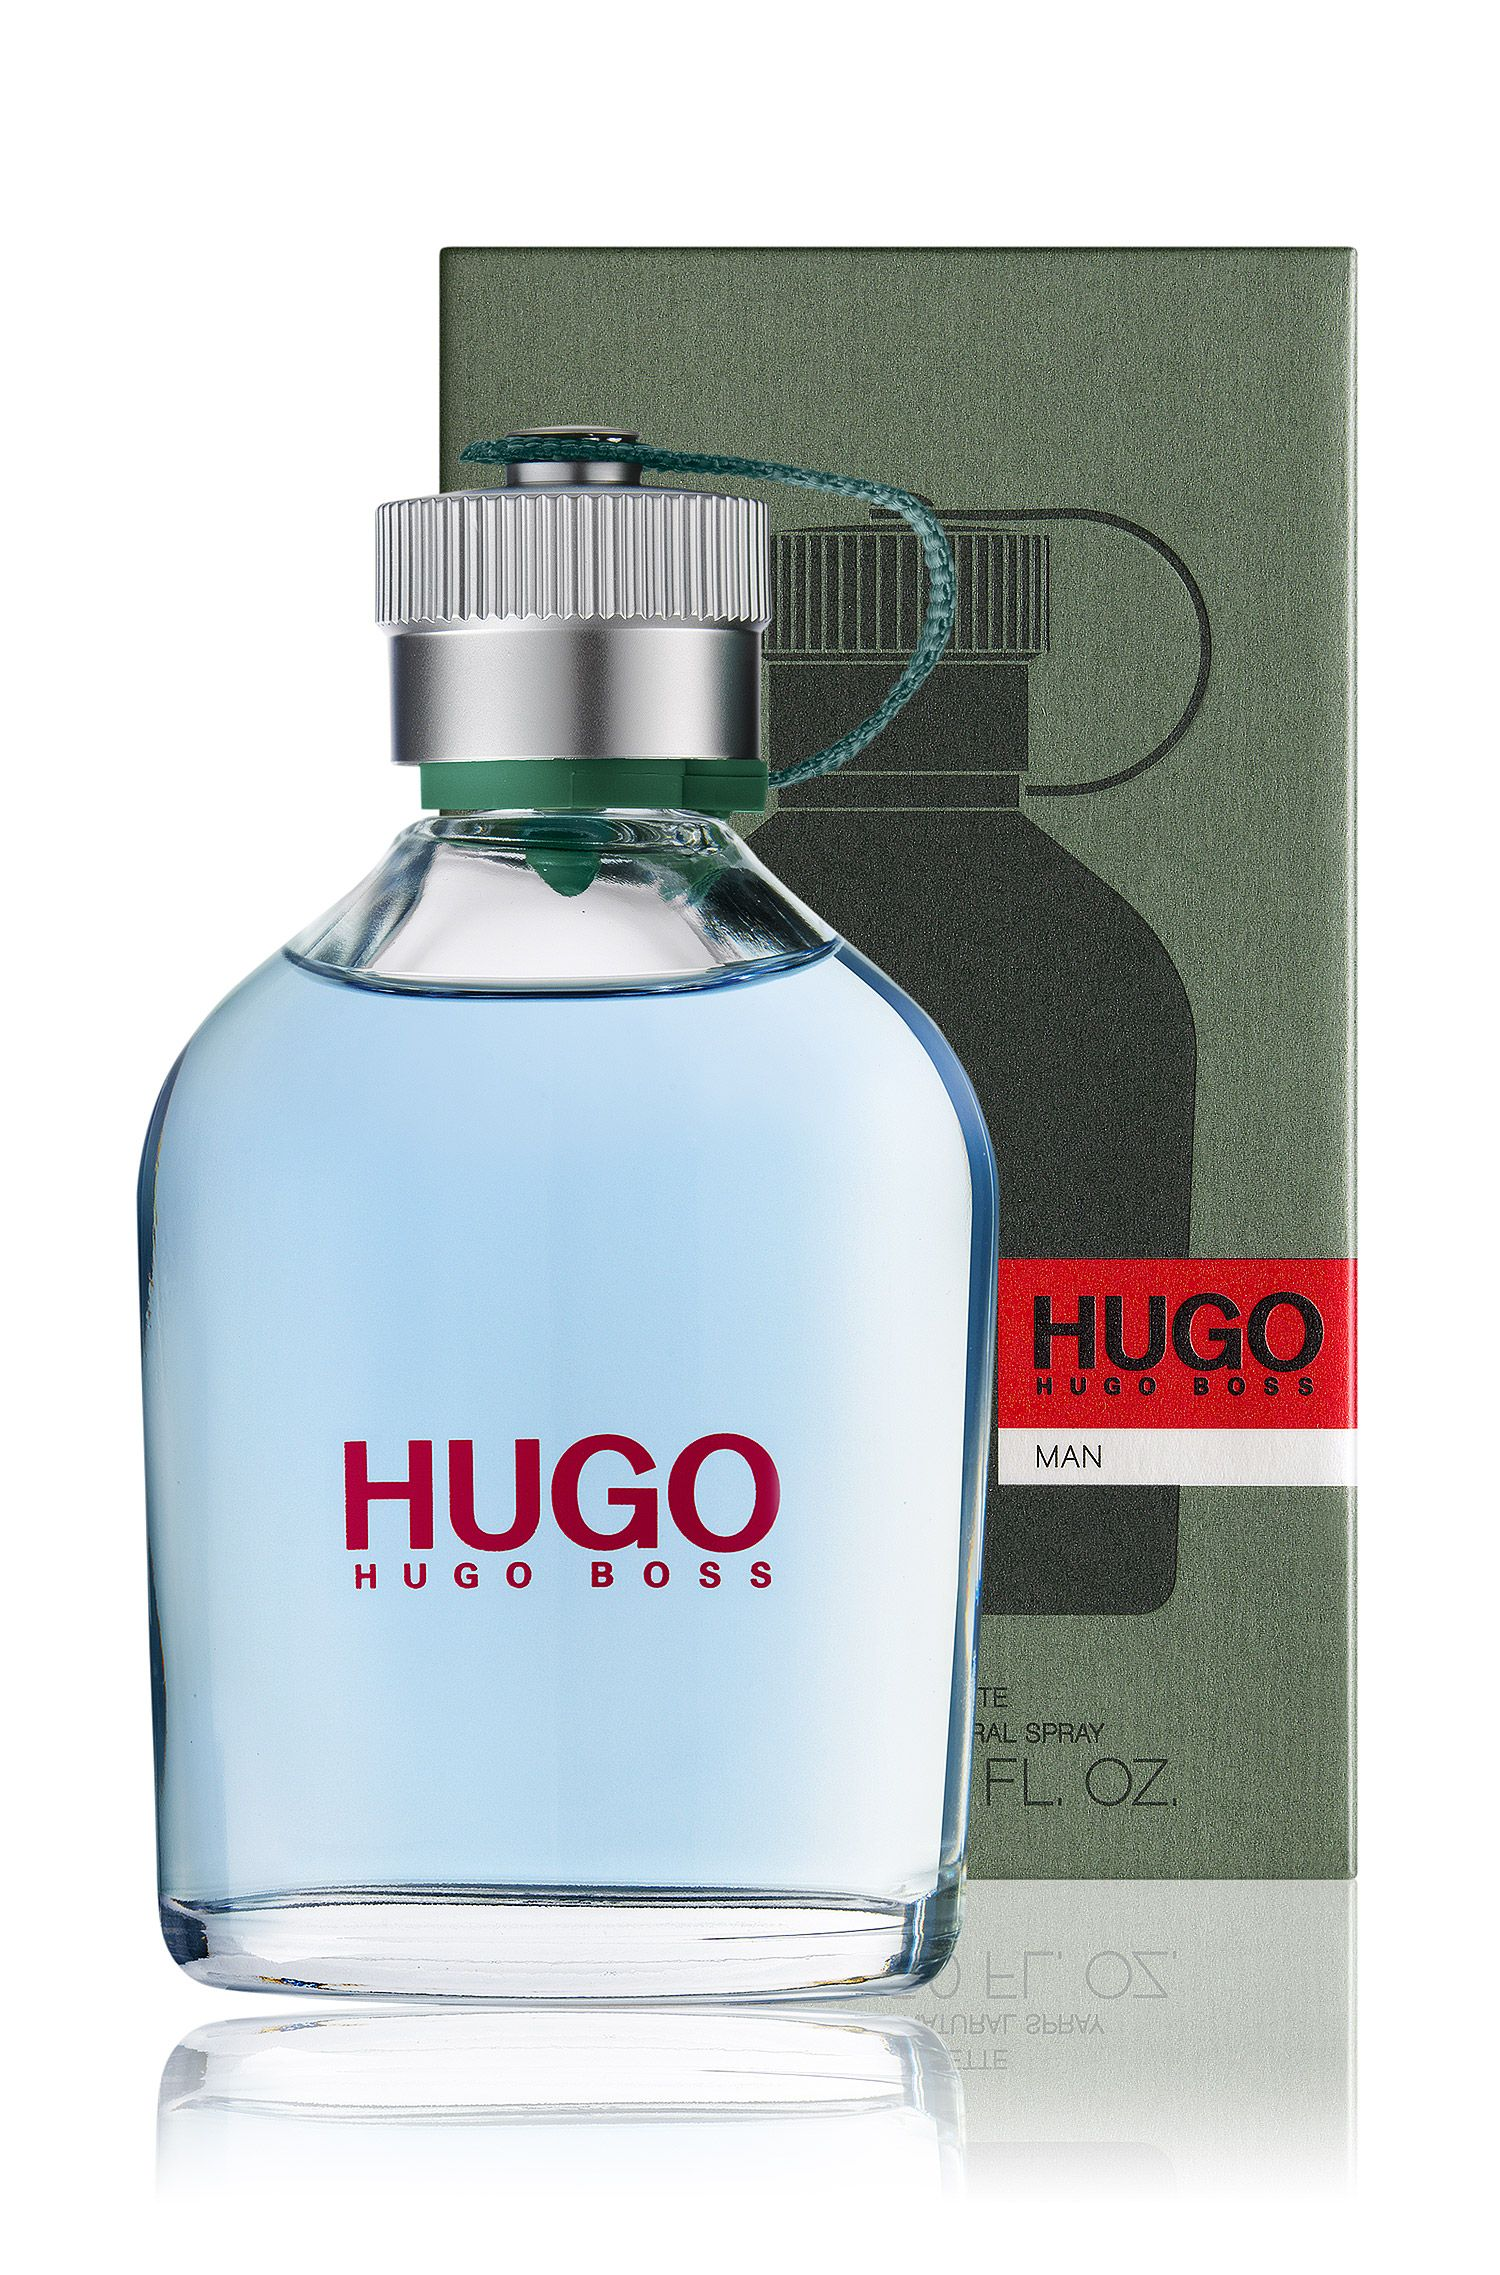 HUGO Man Eau de Toilette 150 ml